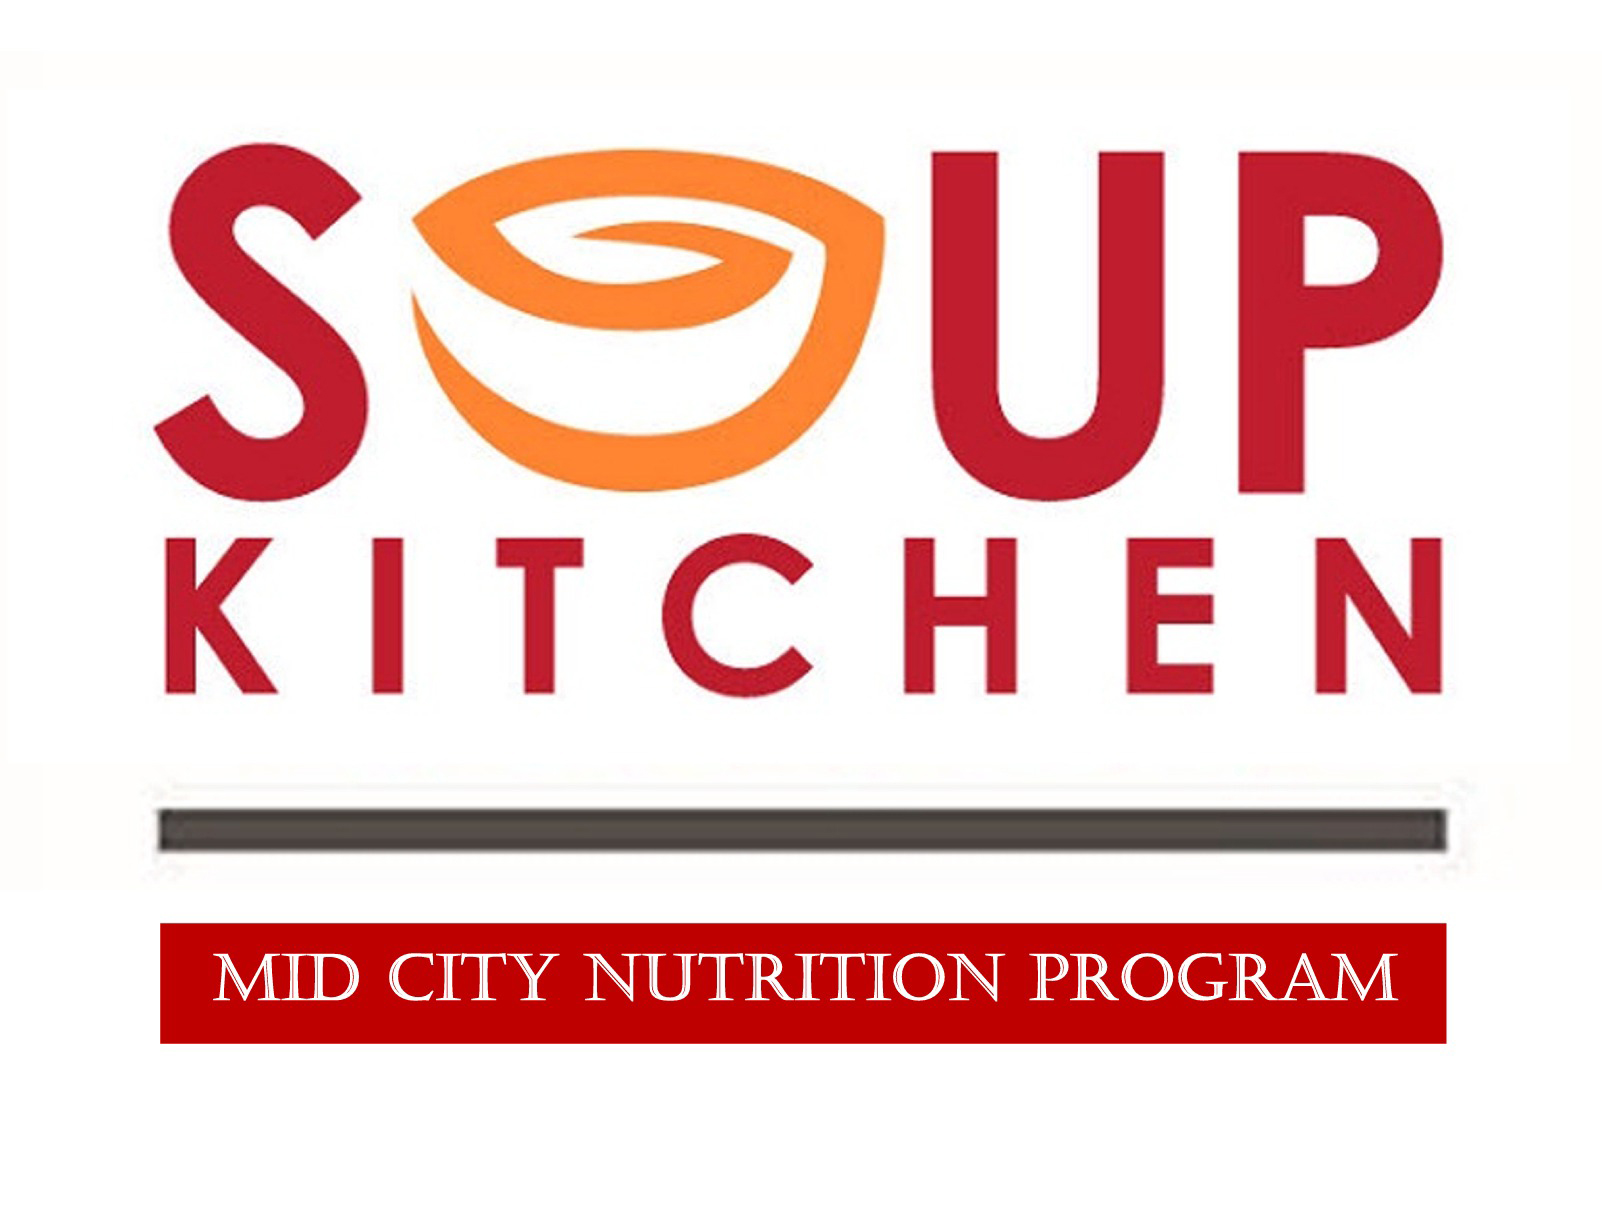 Mid City Nutrition Program